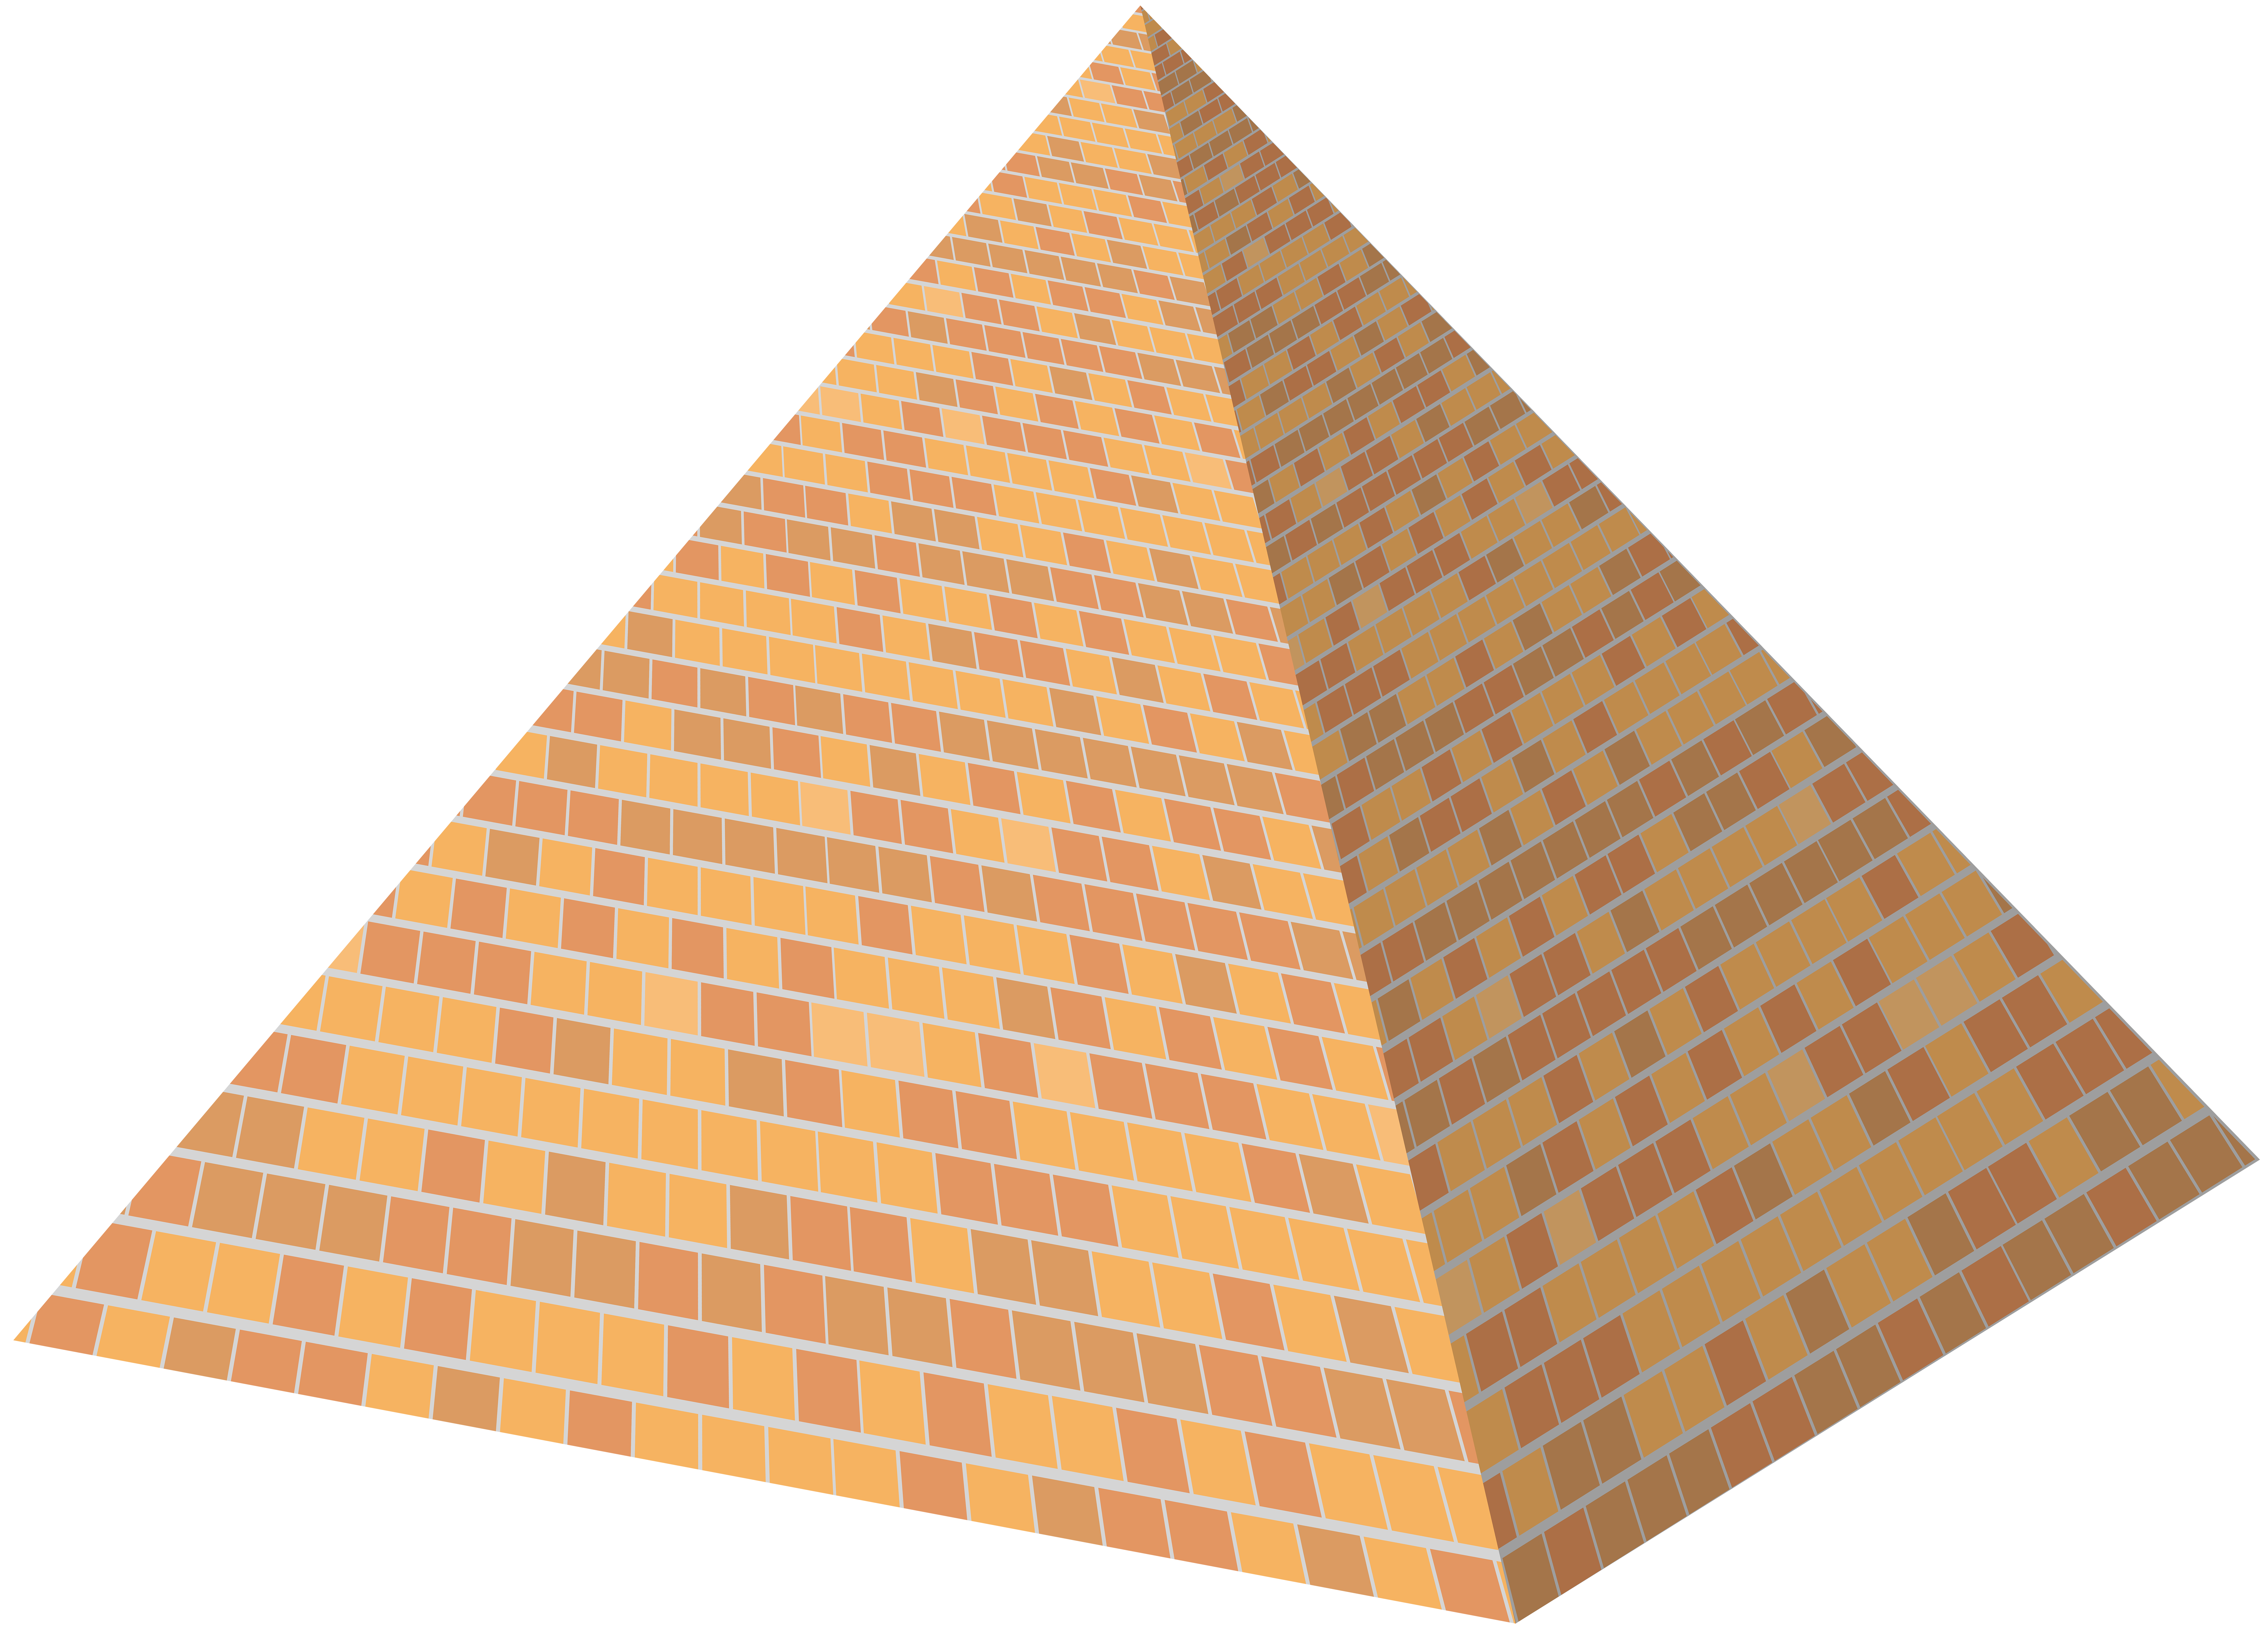 royalty free library Png clip art best. Pyramid clipart.